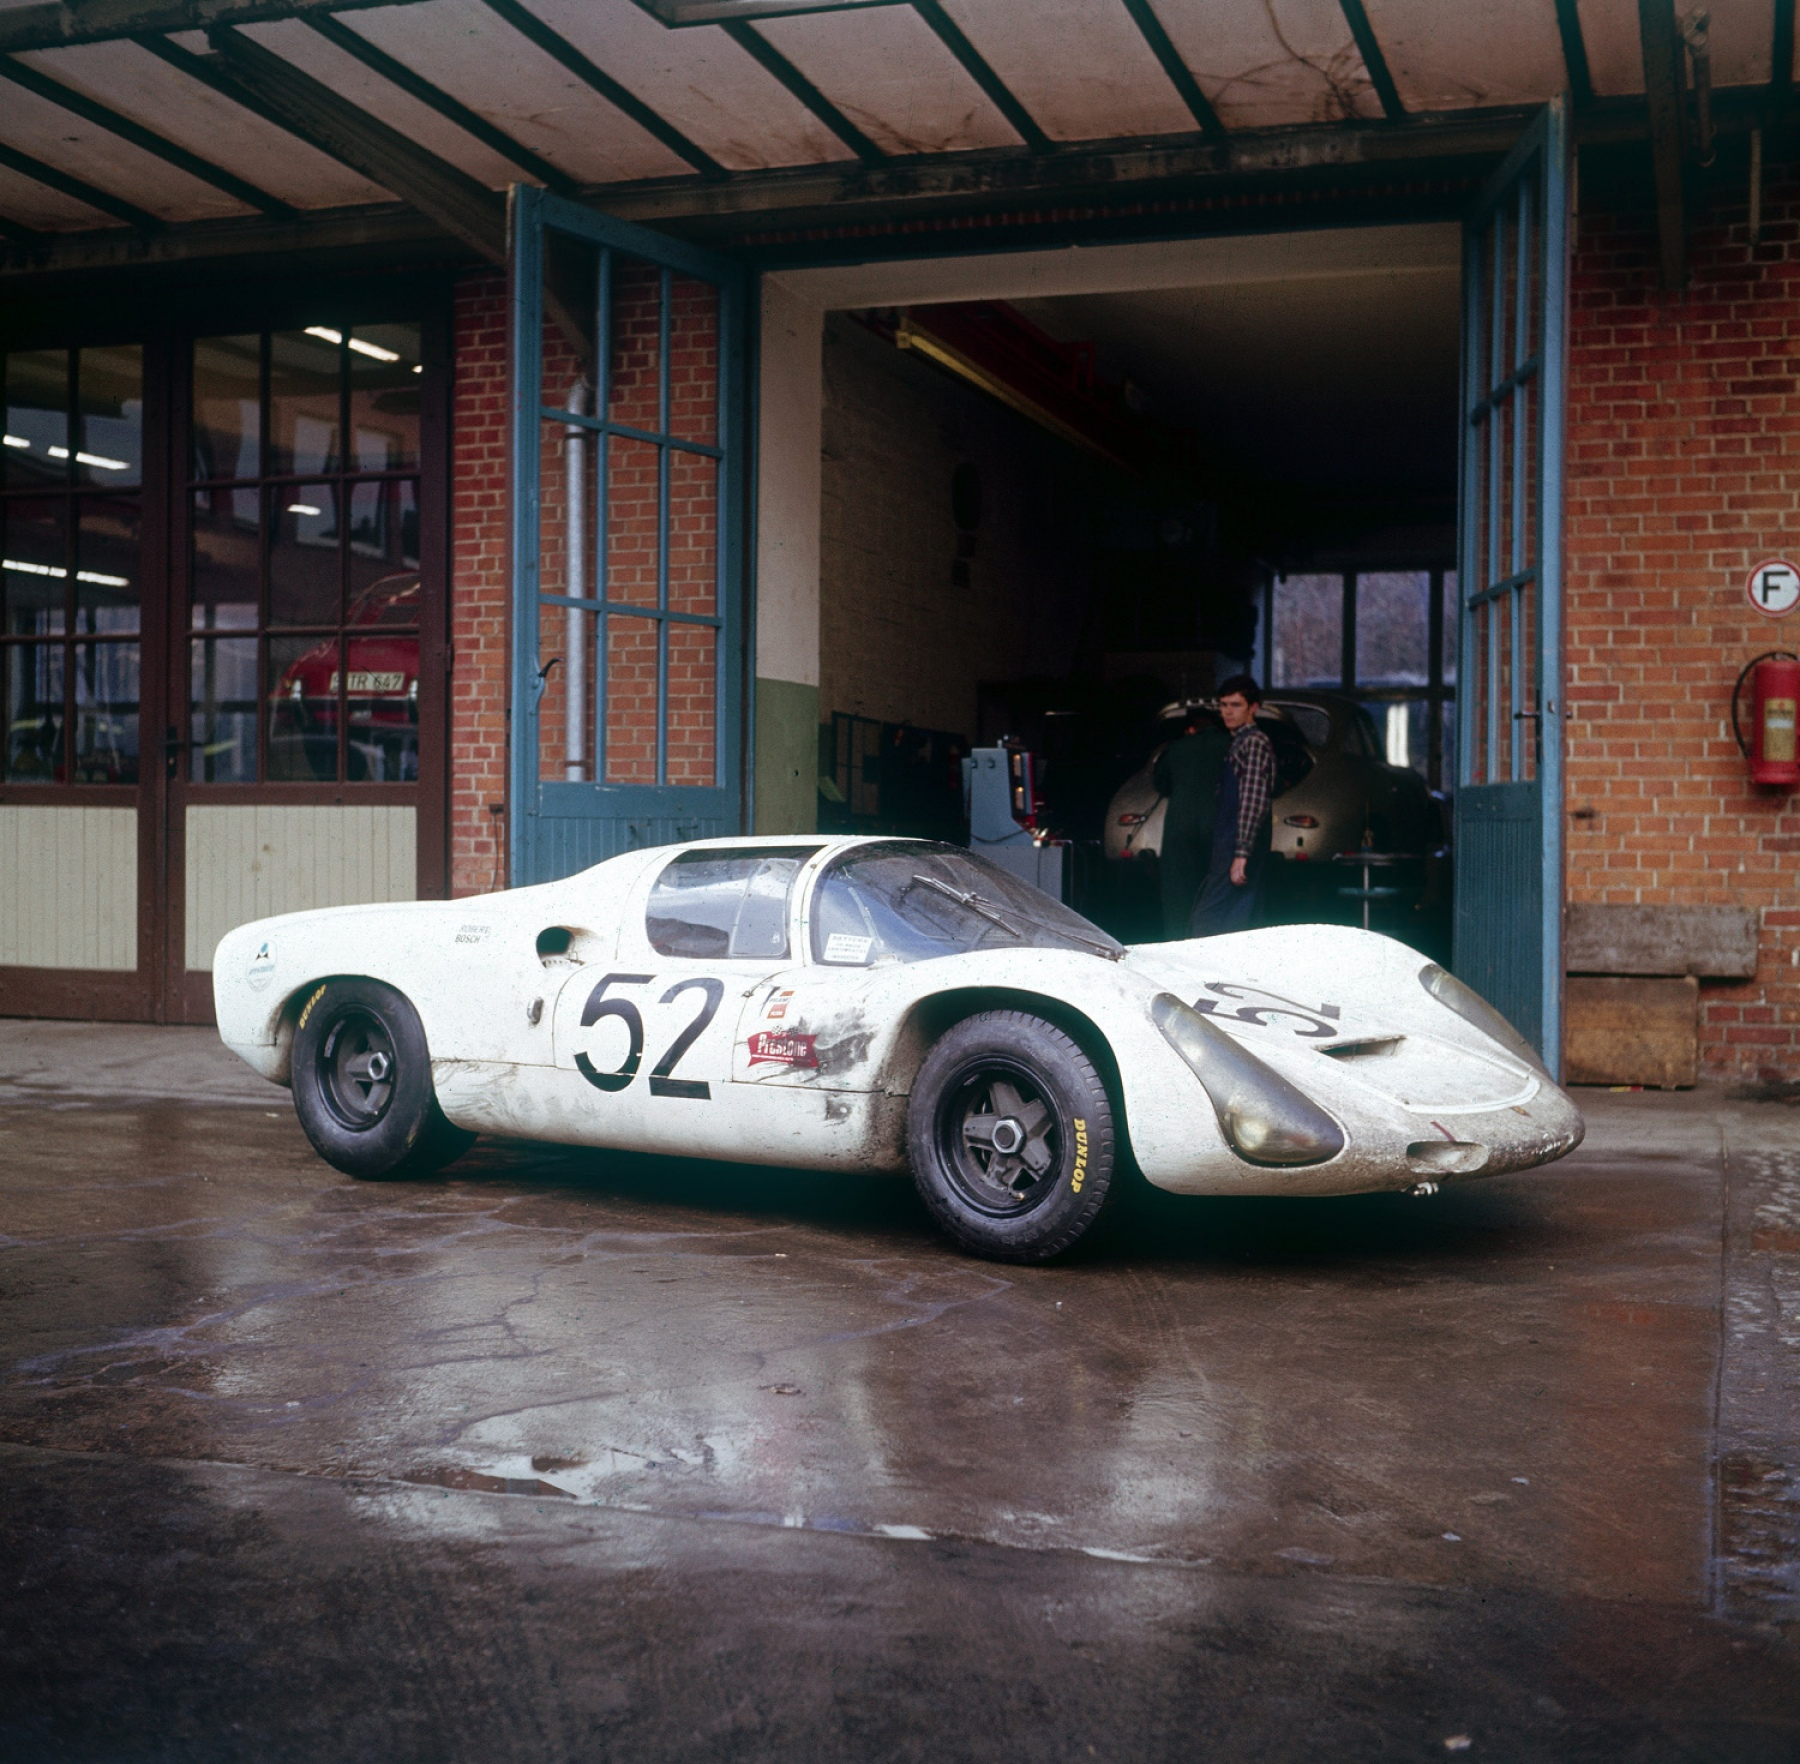 70 years of Porsche Sports Cars - 70 years of Porsche Sports Cars